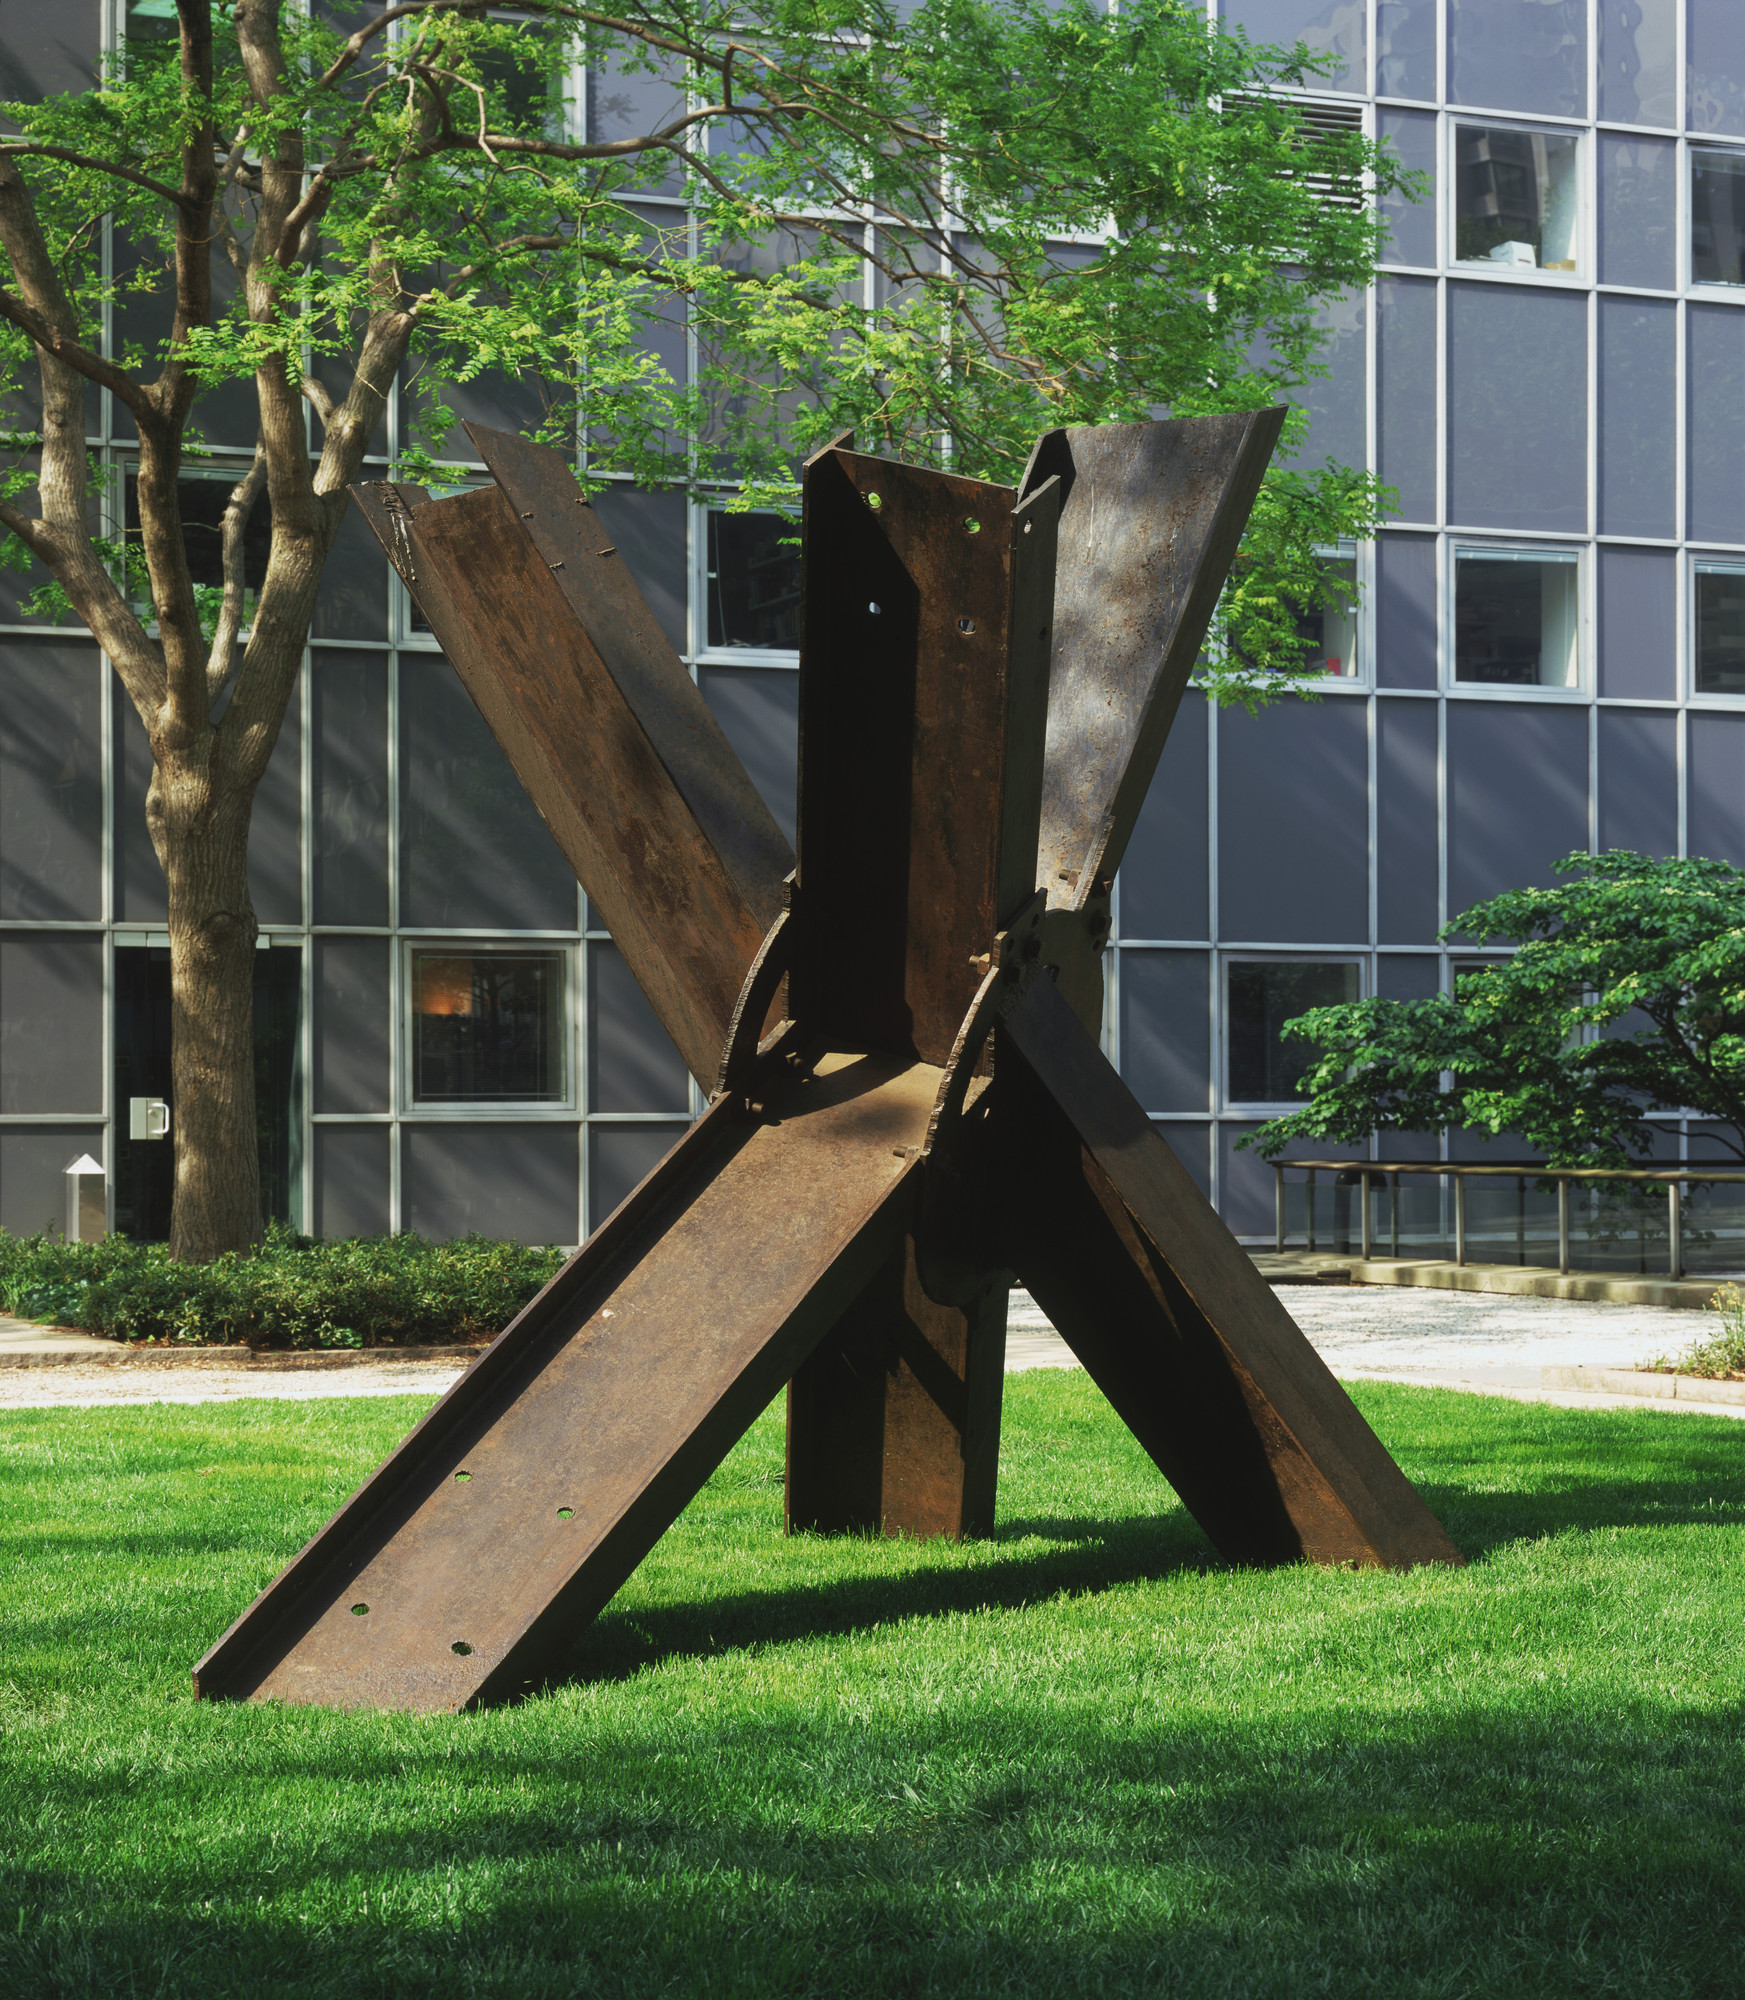 Mark di Suvero. For Roebling. 1971